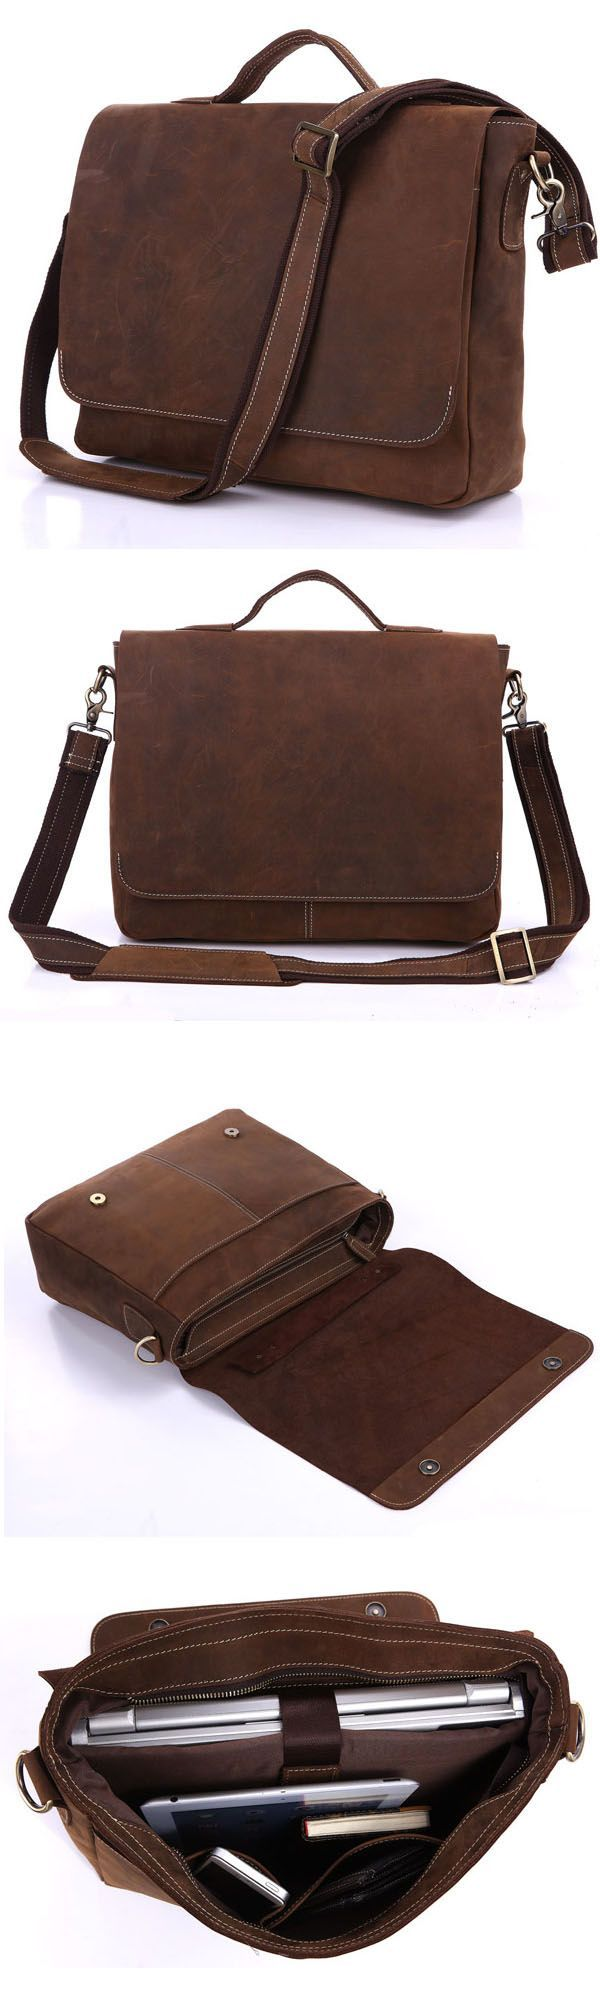 "Handmade Vintage Leather Briefcase / Leather Messenger Bag / 13"" 15"" MacBook 13"" 14"" 15"" Laptop Bag"